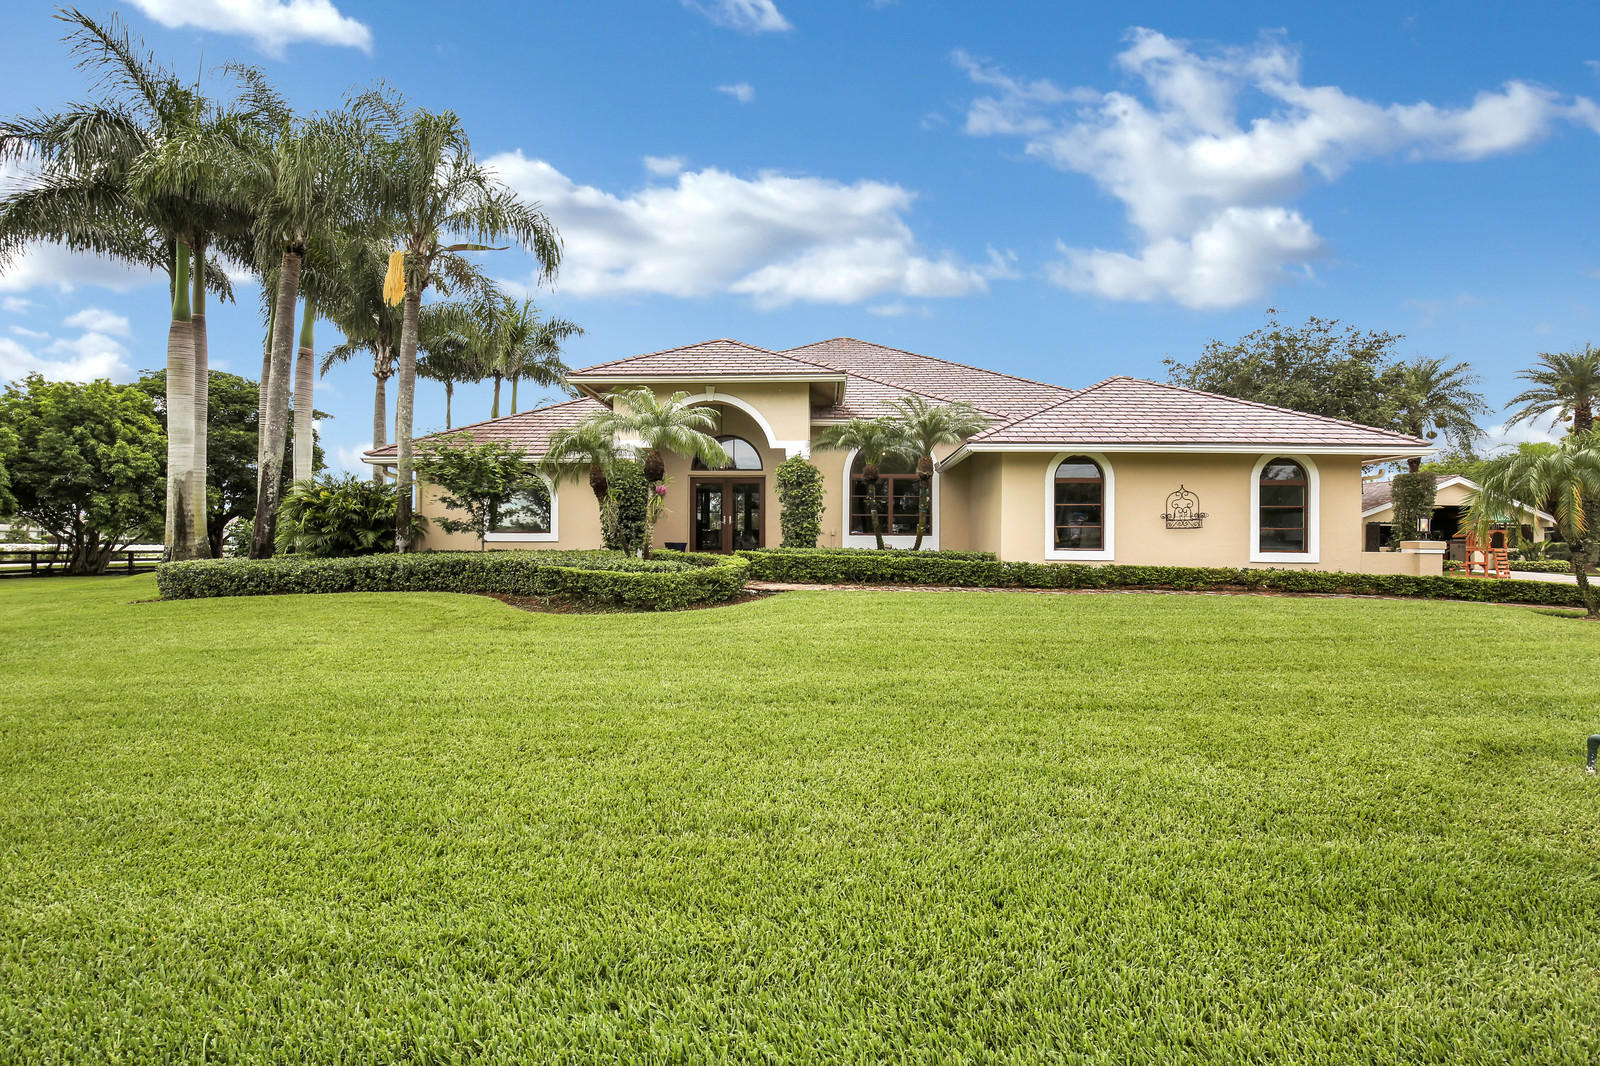 2169 Appaloosa Trail, Wellington, Florida 33414, 4 Bedrooms Bedrooms, ,3 BathroomsBathrooms,Single Family,For Sale,Appaloosa,RX-10440229